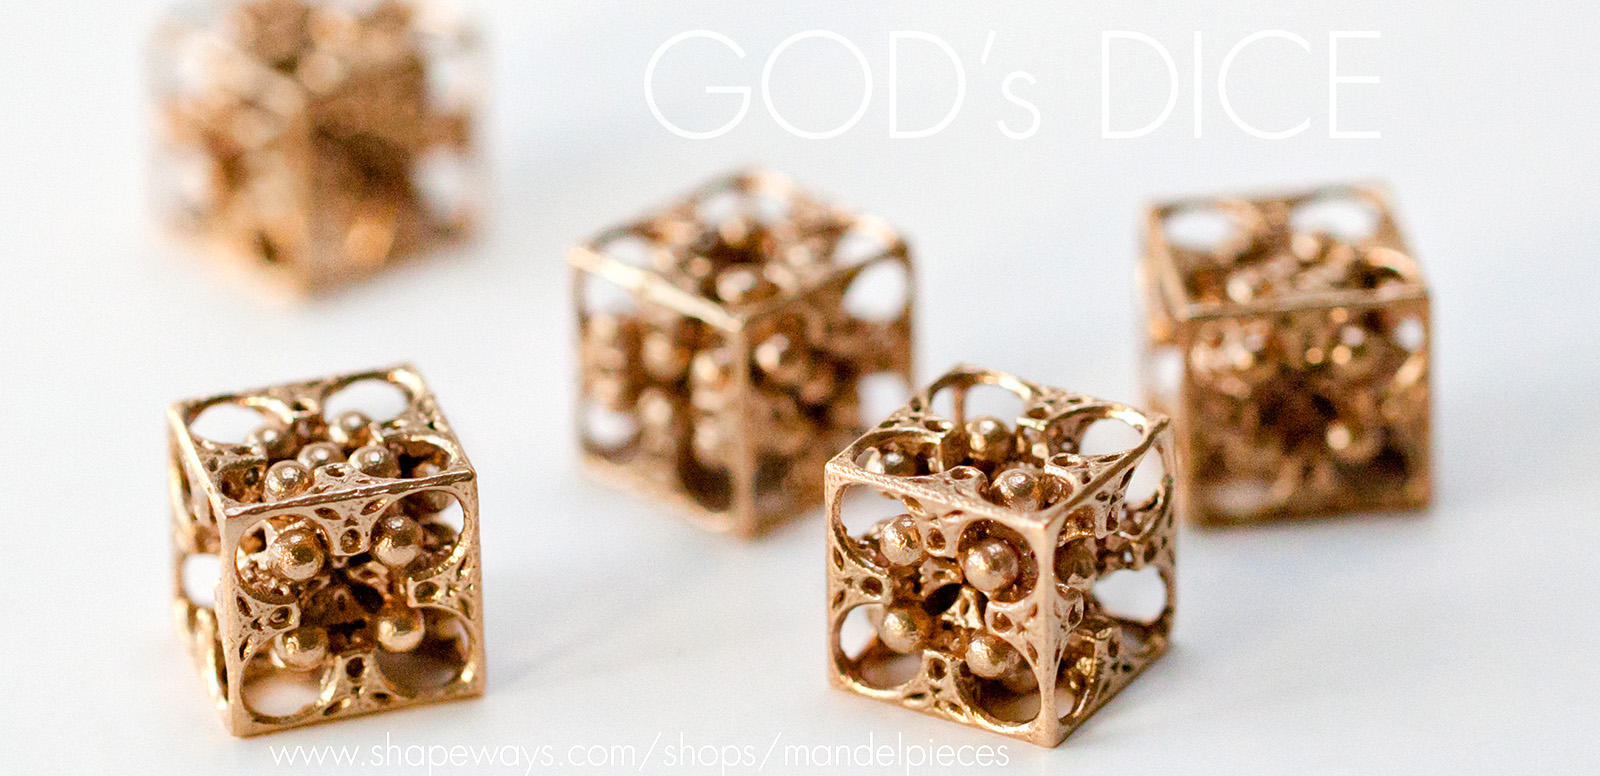 Gods Dice - 3D printed Bronze Jewelry under $50 by MANDELWERK